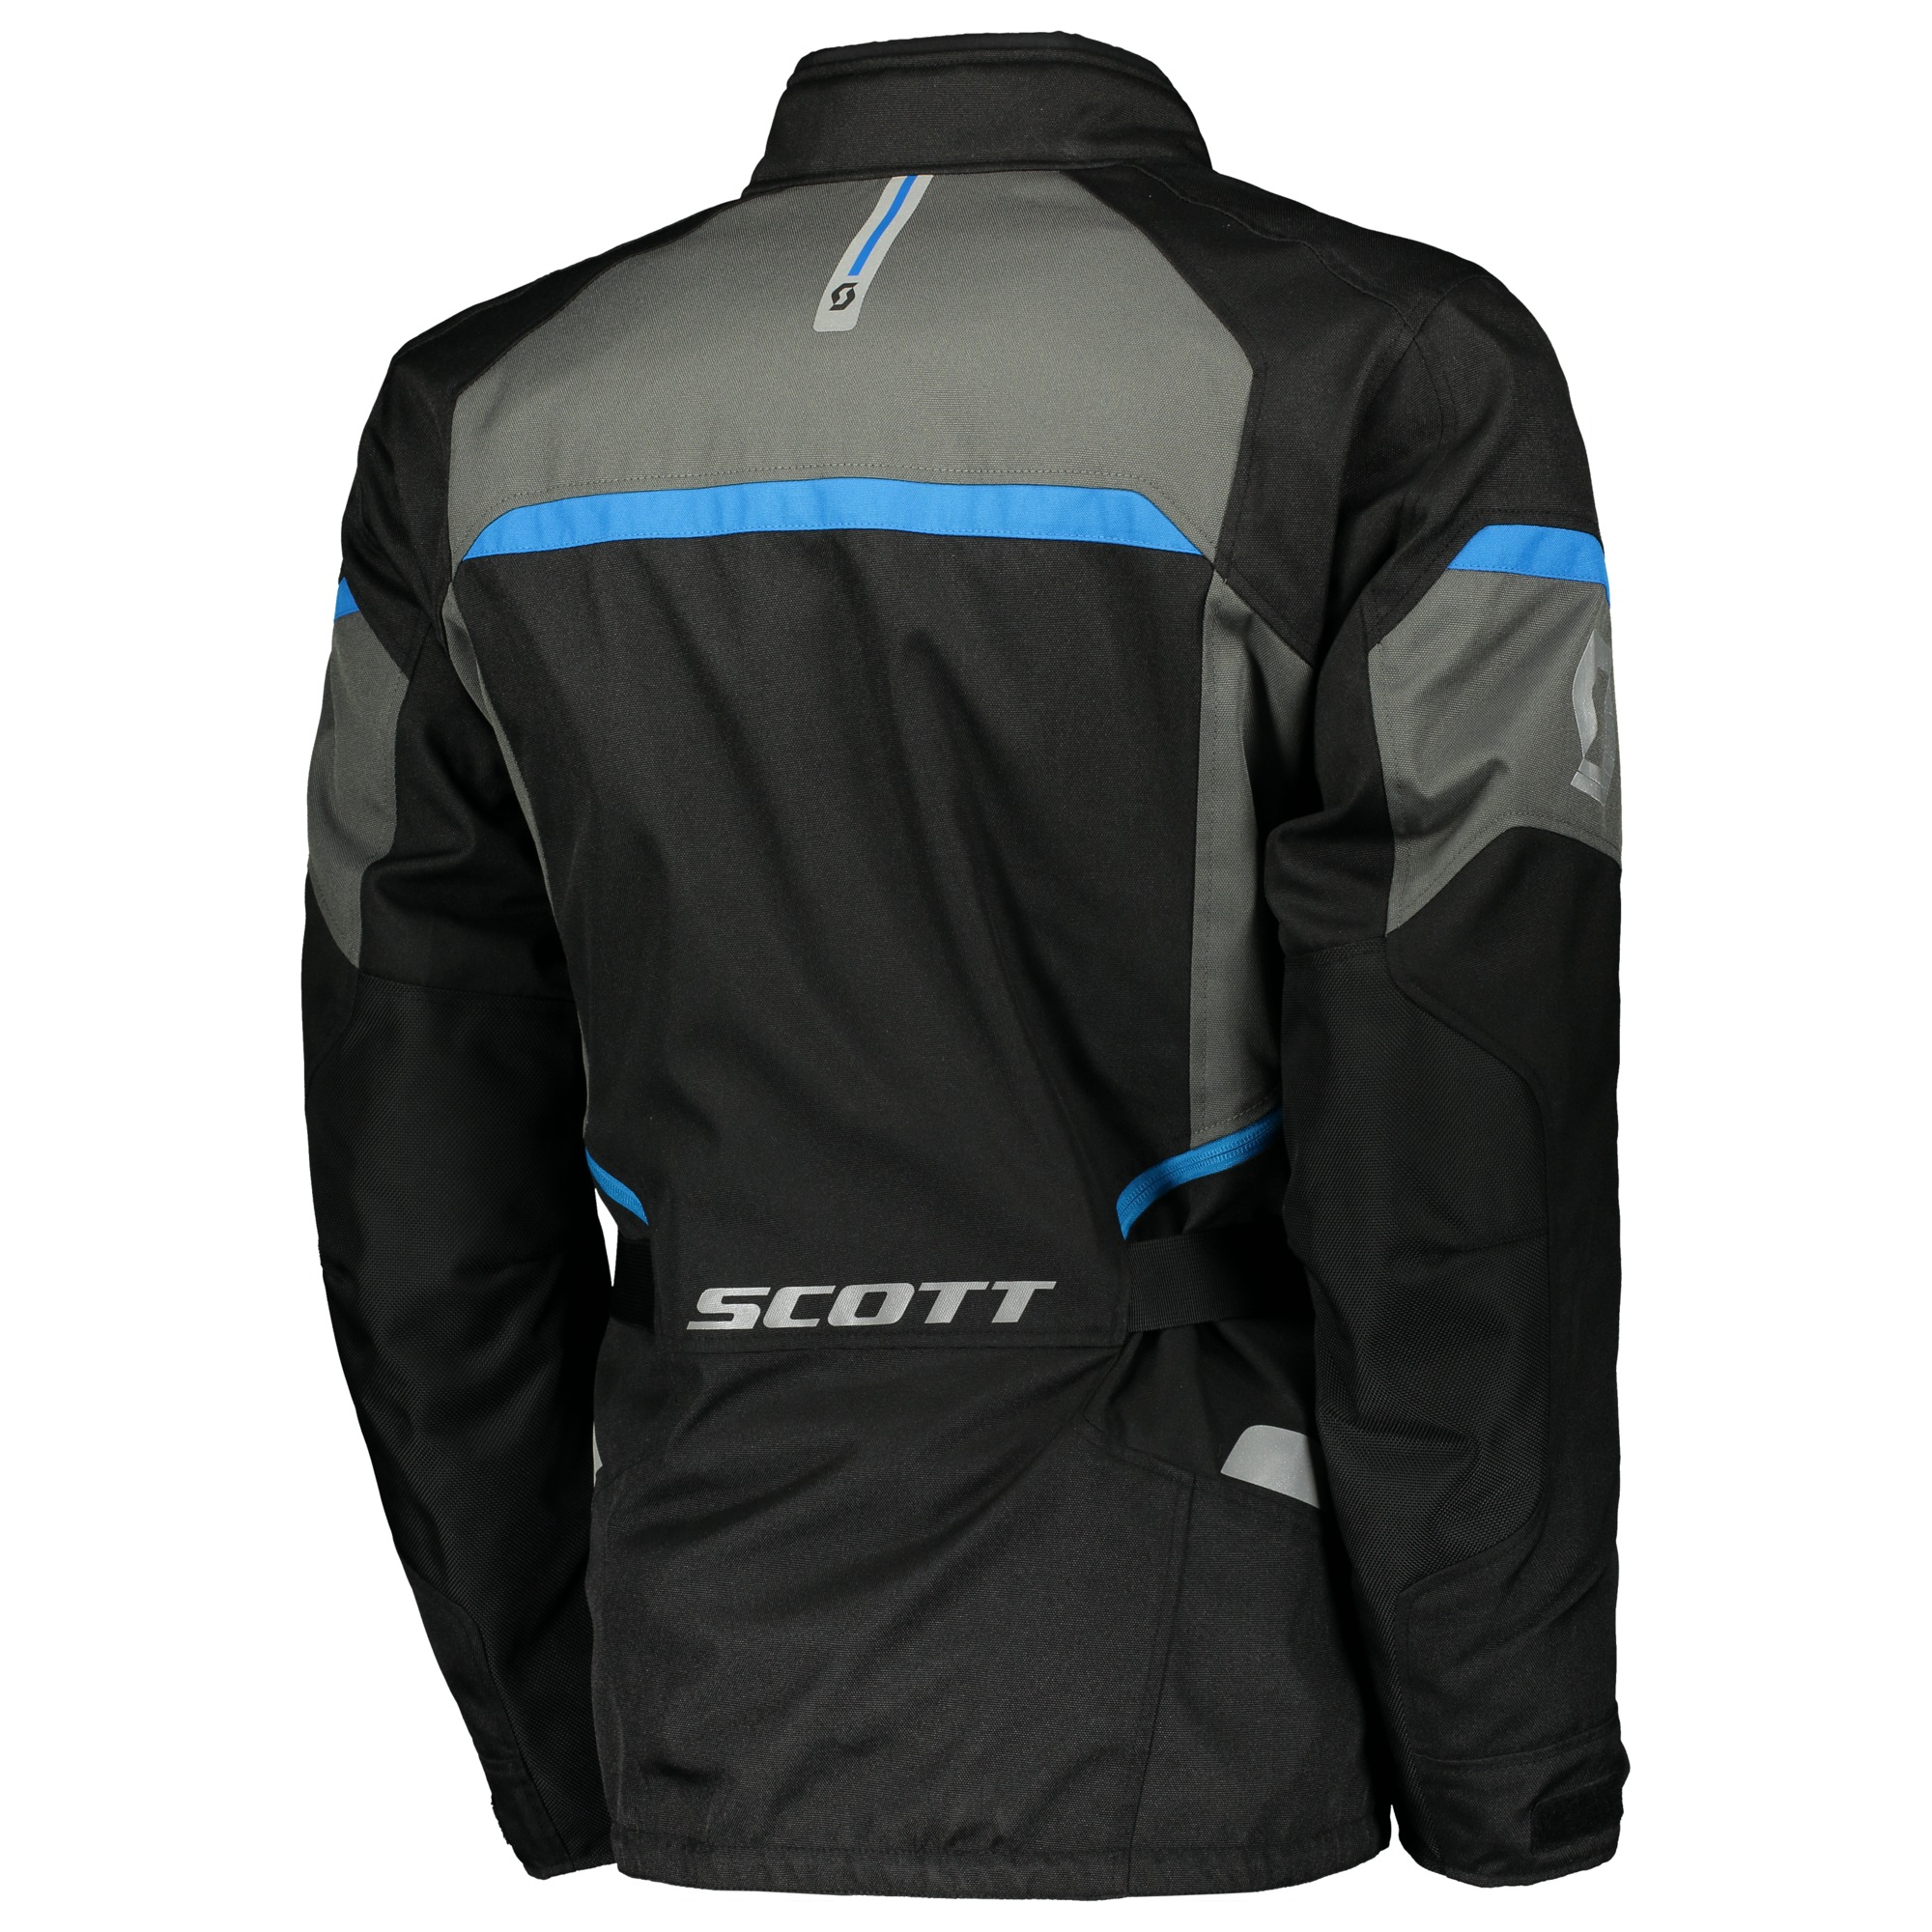 SCOTT Storm DP Jacket